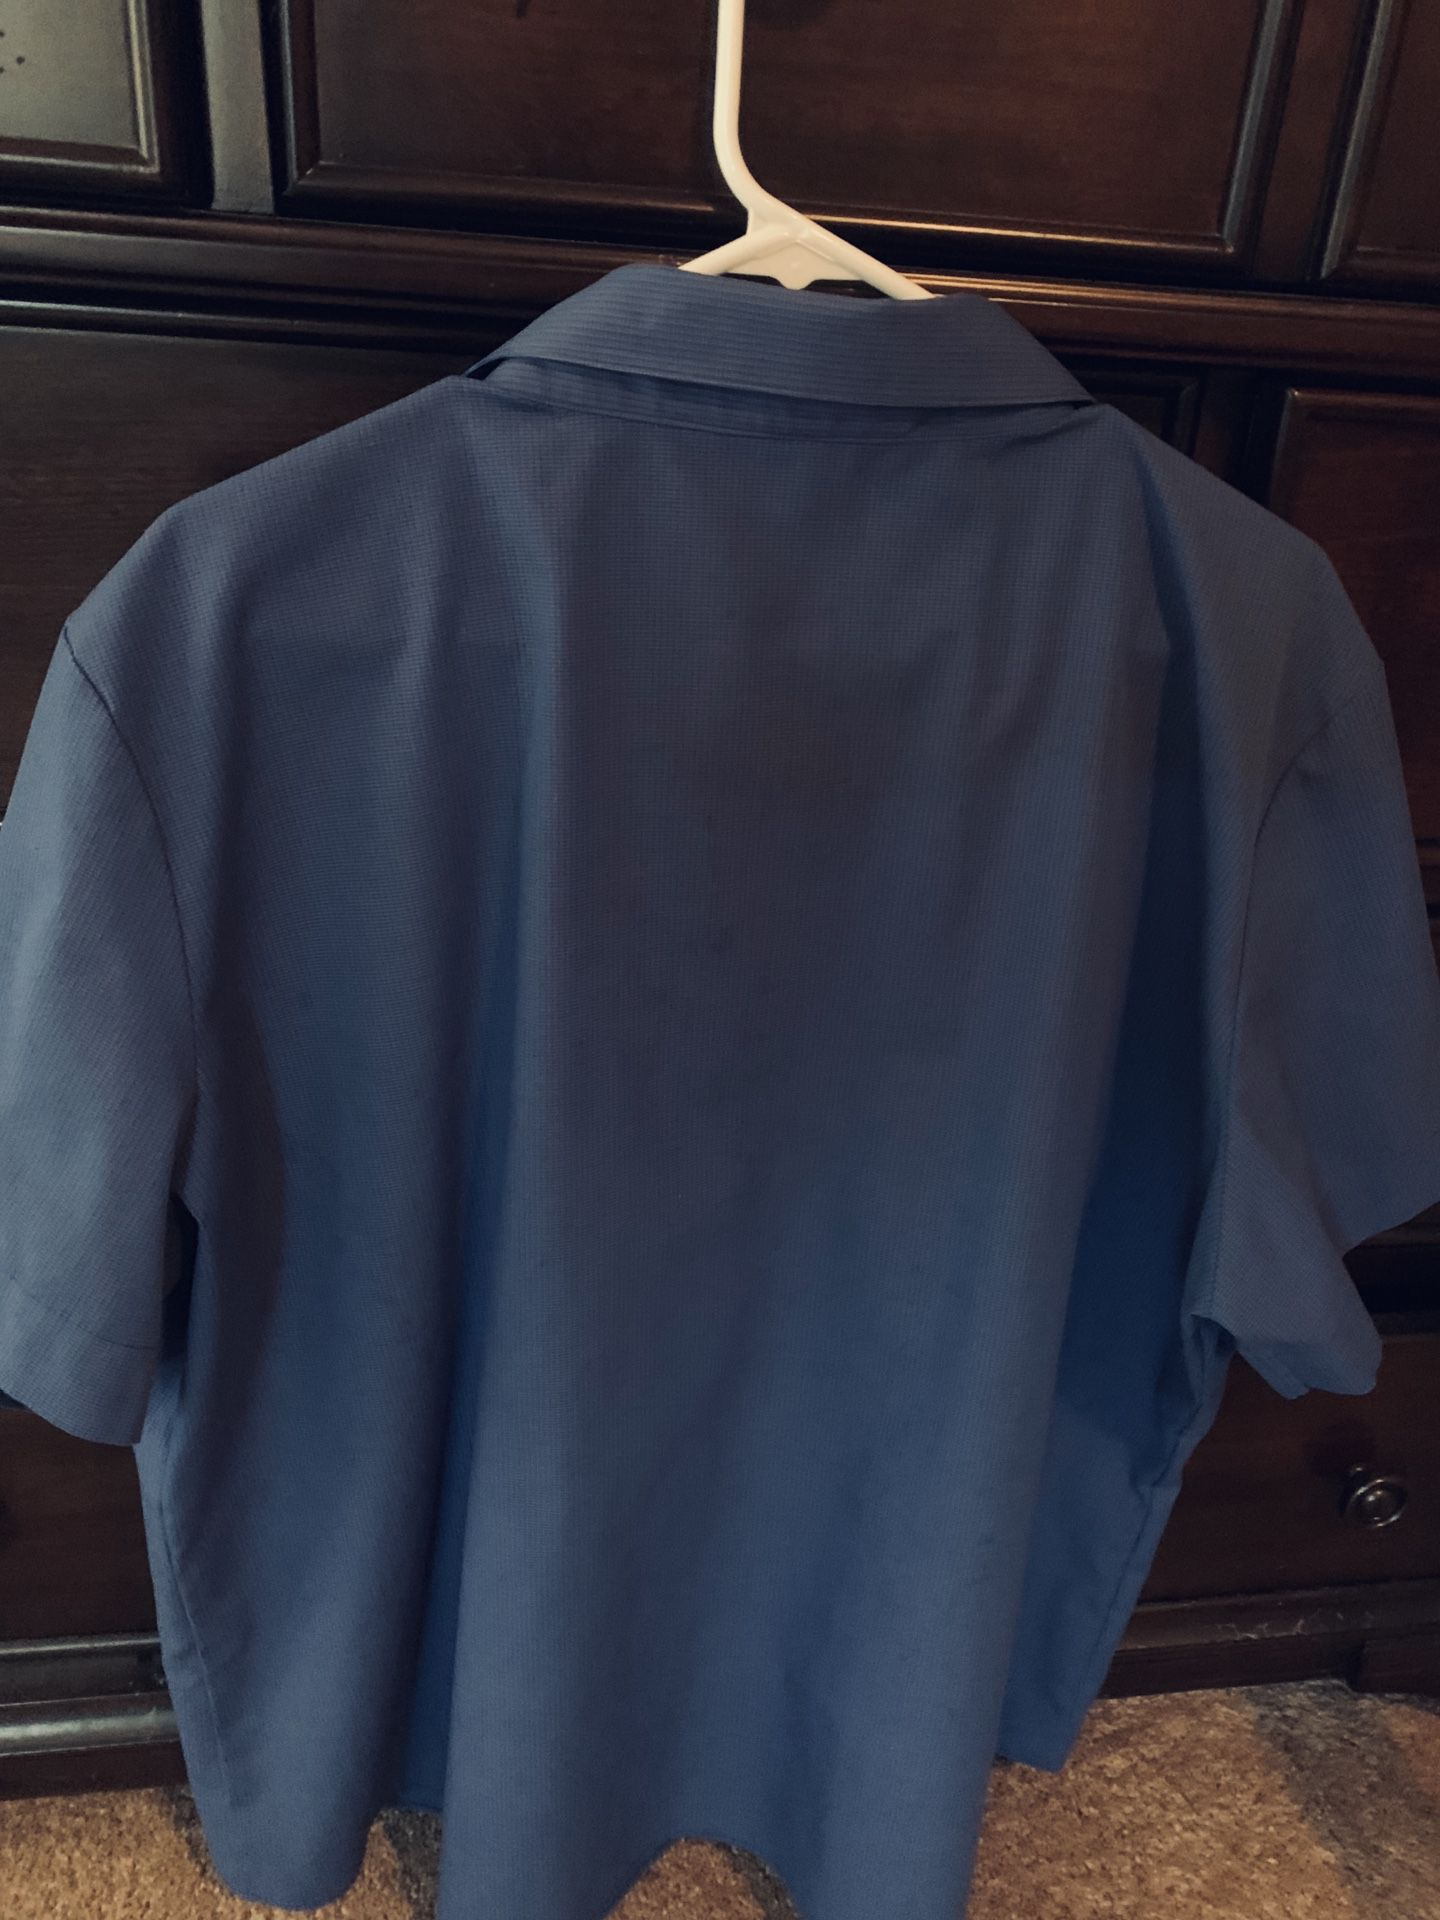 $25 for all 5 sets of Brand New work shirt and pants